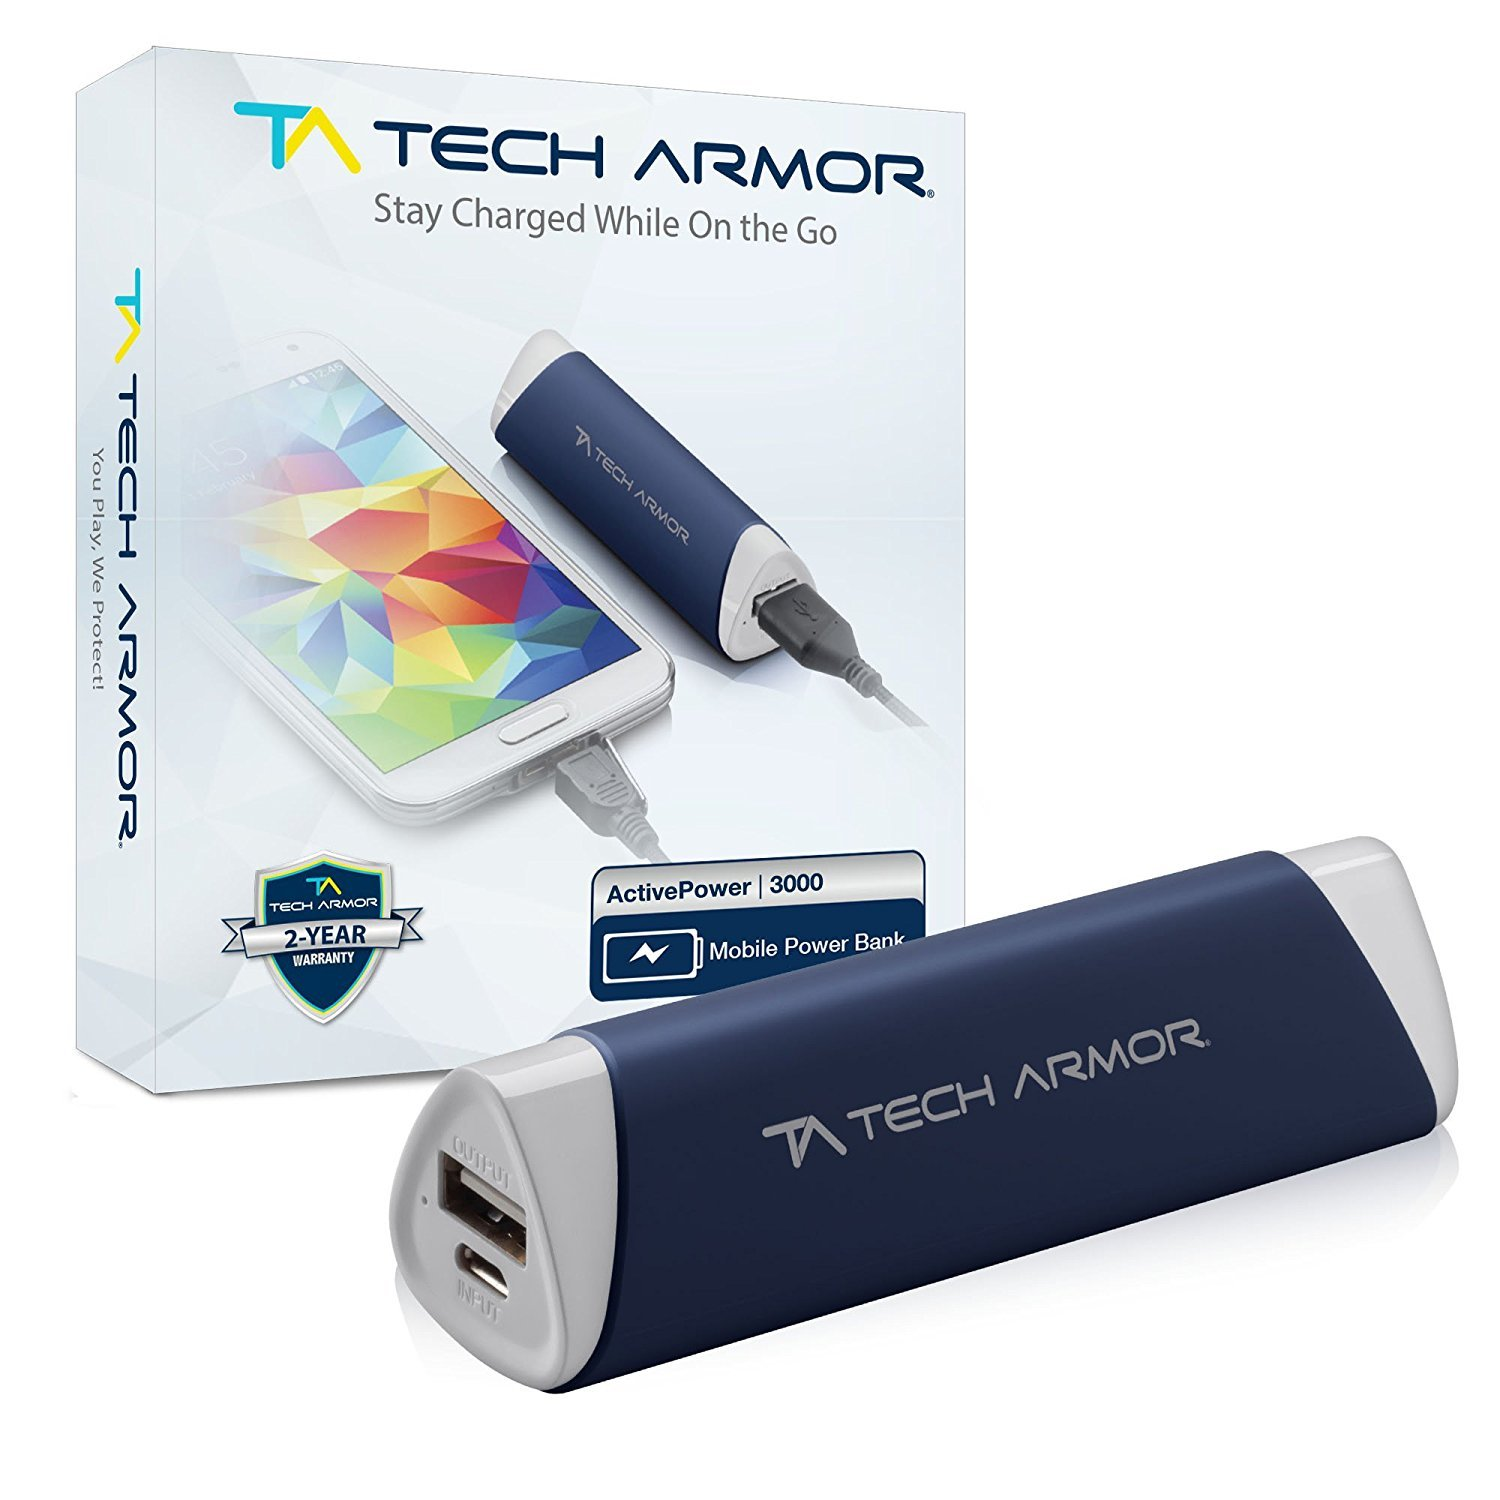 Tech Armor 3000mAh ActivePower PowerBank by External Battery Portable Dual USB Charger Power Bank - Fast Charging, High Capacity, Ultra Compact